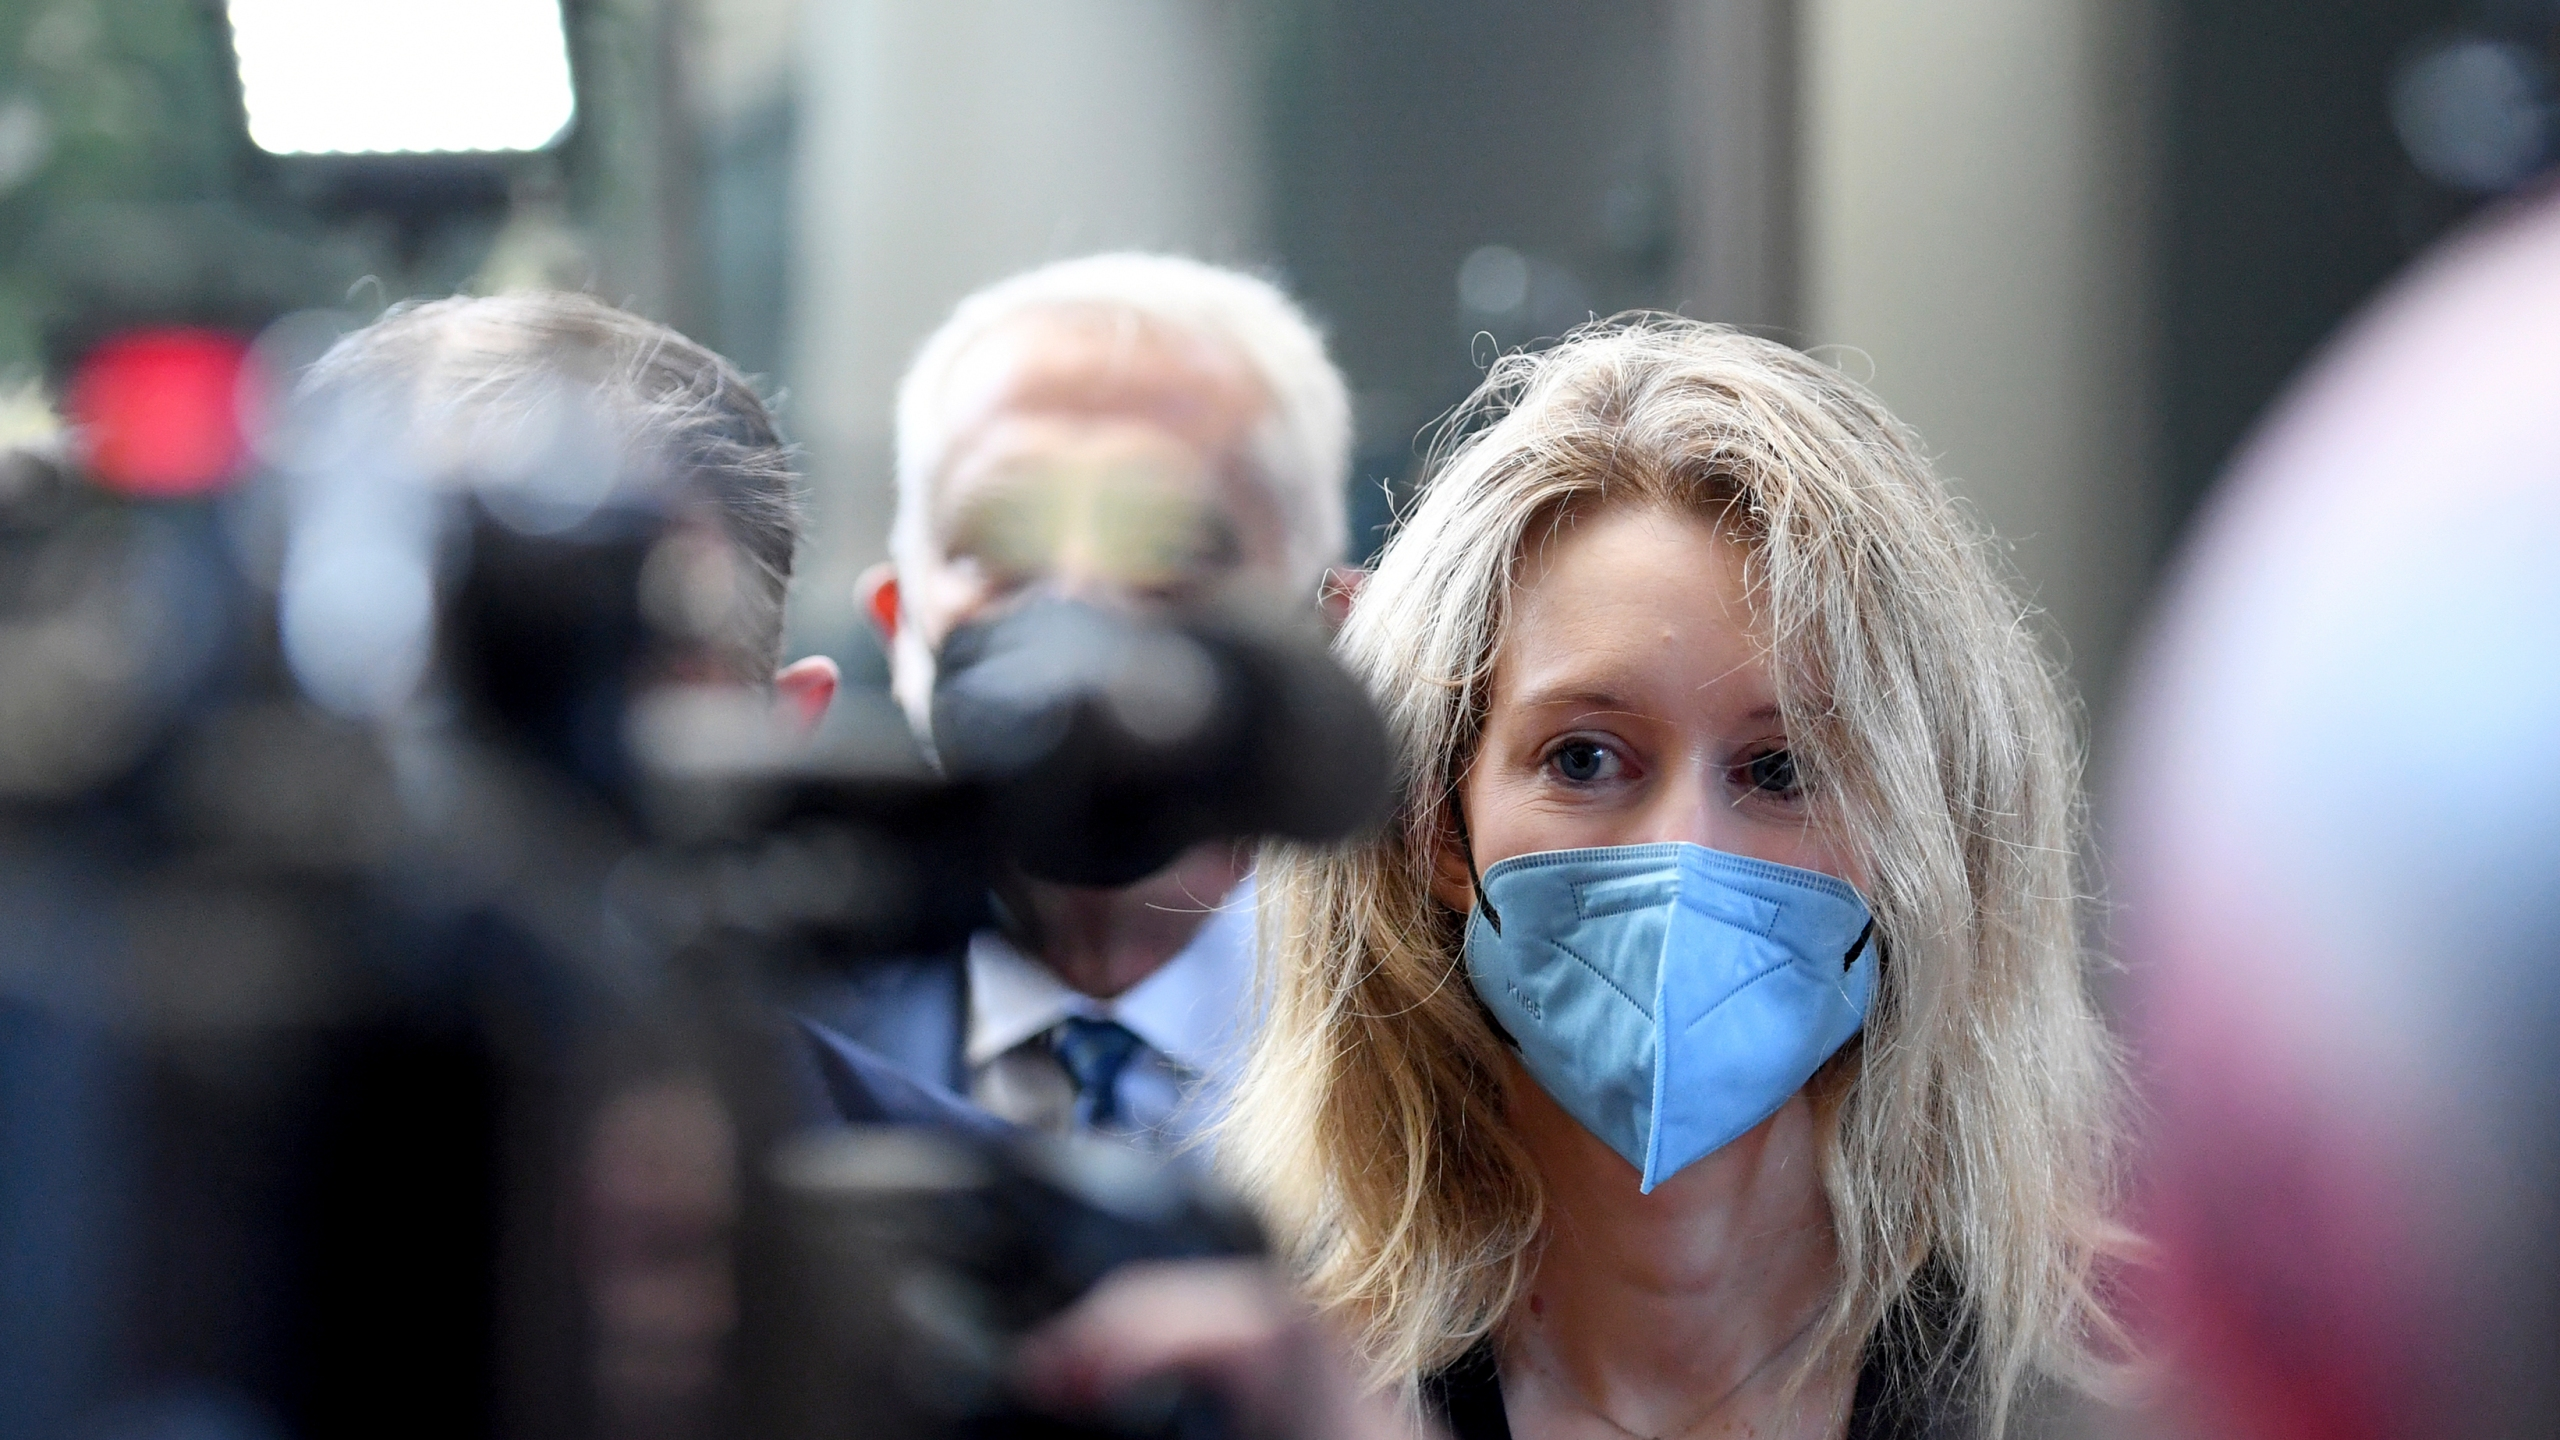 In this Tuesday, Aug. 31, 2021, file photo, Elizabeth Holmes, founder and CEO of Theranos, arrives at the federal courthouse for jury selection in her trial, in San Jose, Calif. A jury weighing the fate of fallen Silicon Valley star Holmes got its first chance Friday, Oct. 22, to listen to recordings of her boasting to investors about purported breakthroughs in a blood-testing technology. (AP Photo/Nic Coury)